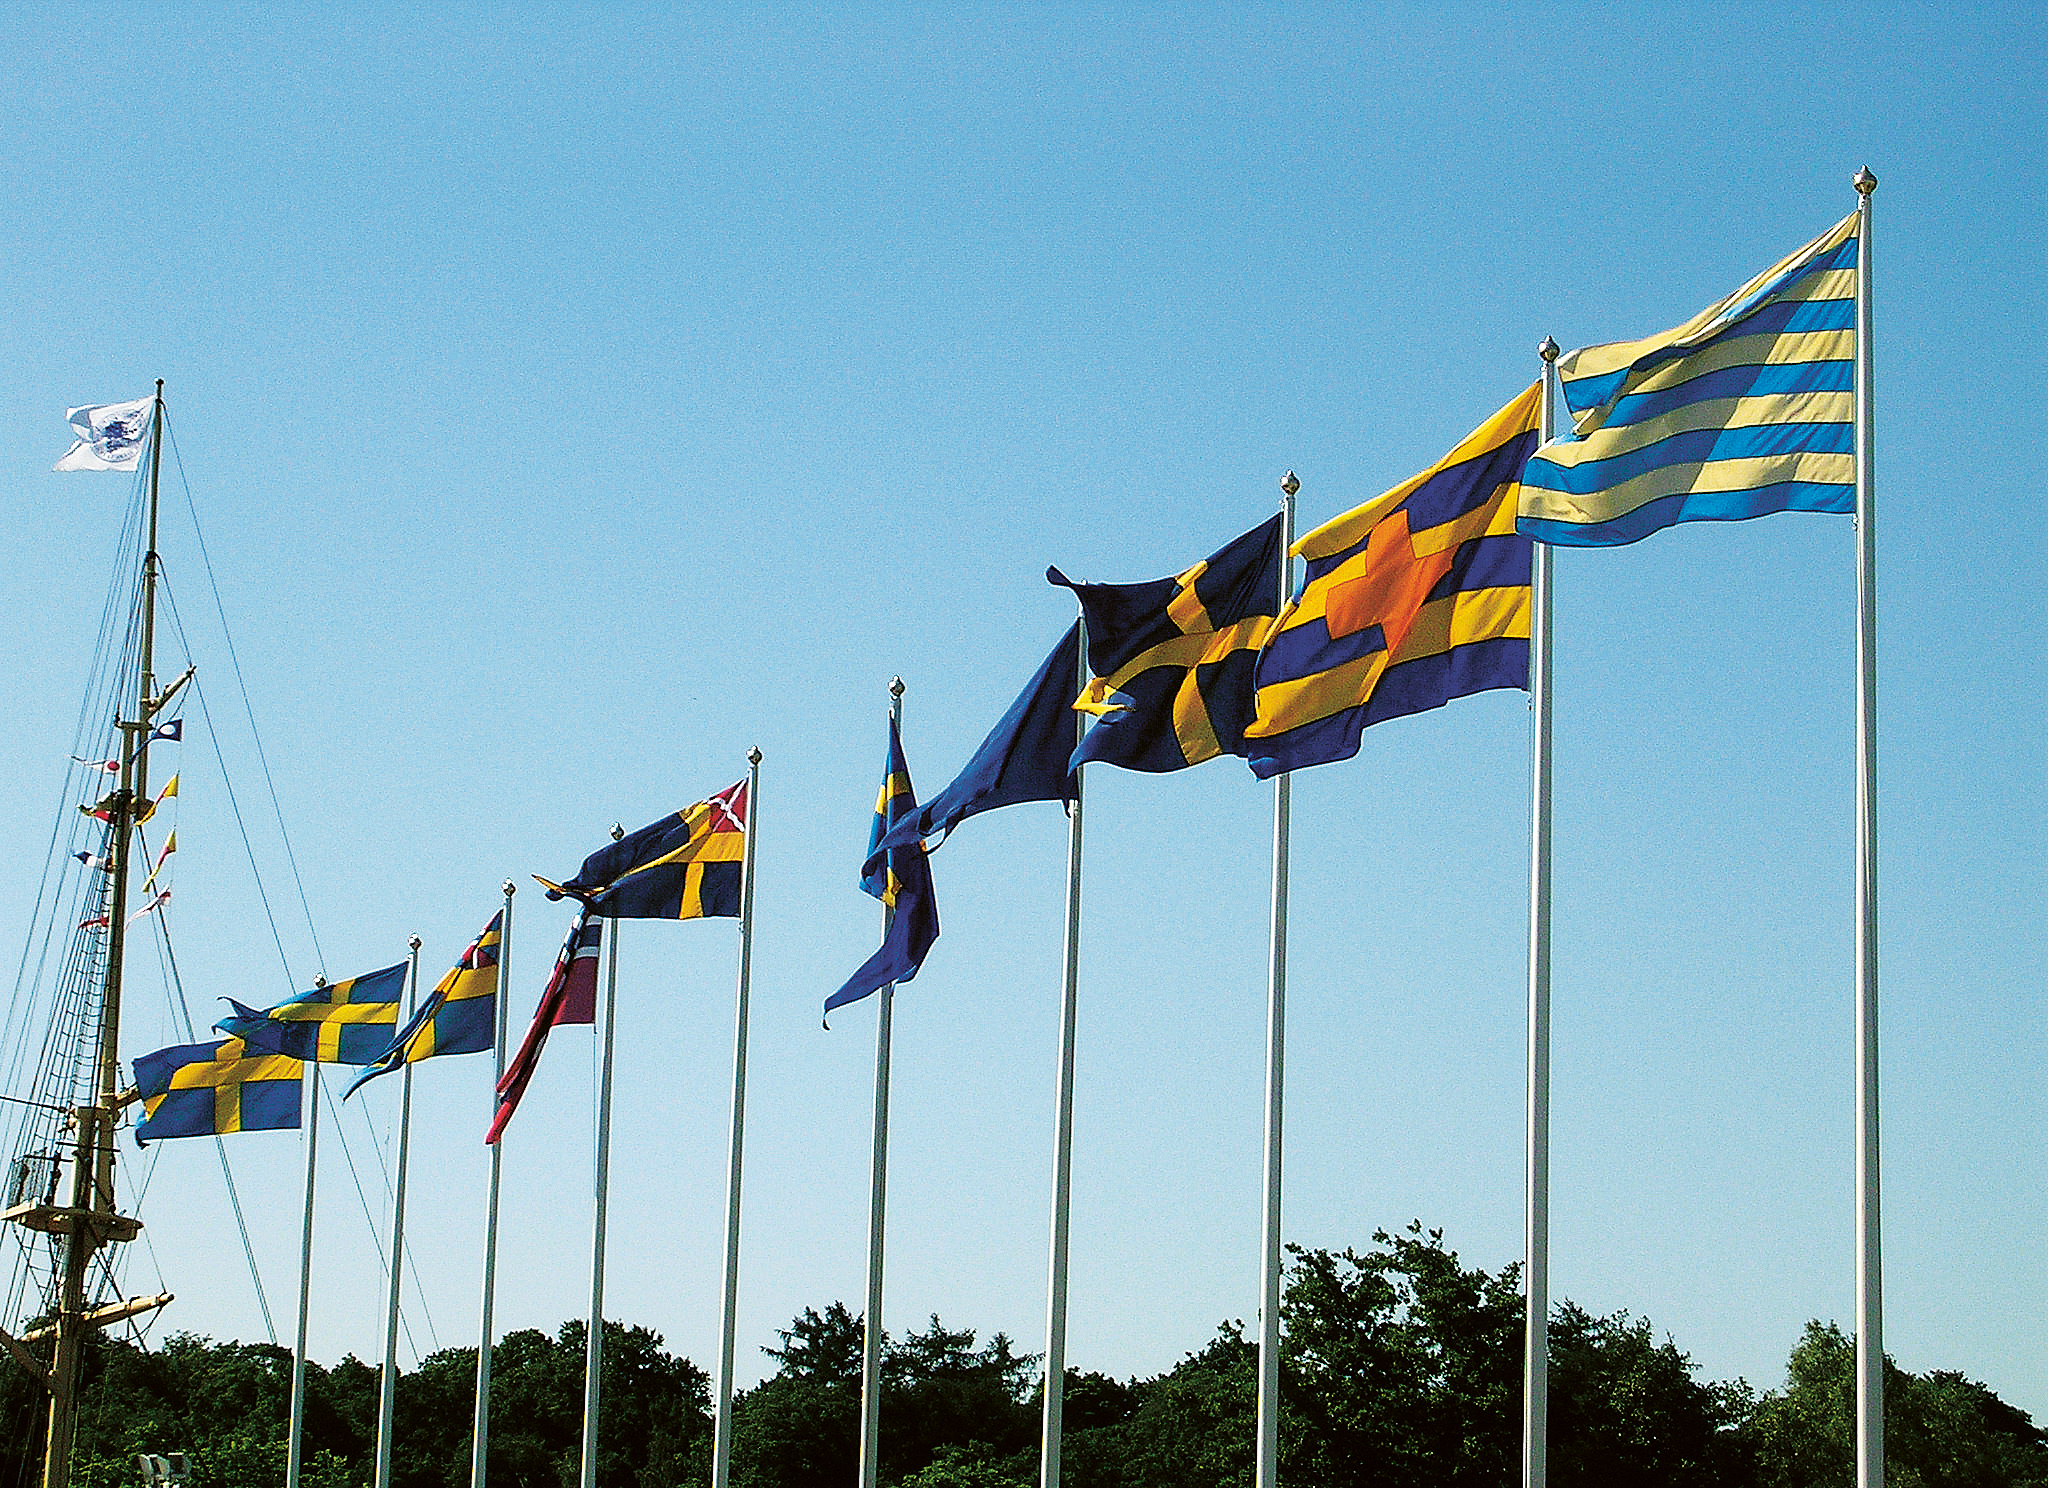 Swedish_historical_flags_at_Maritime_Mus